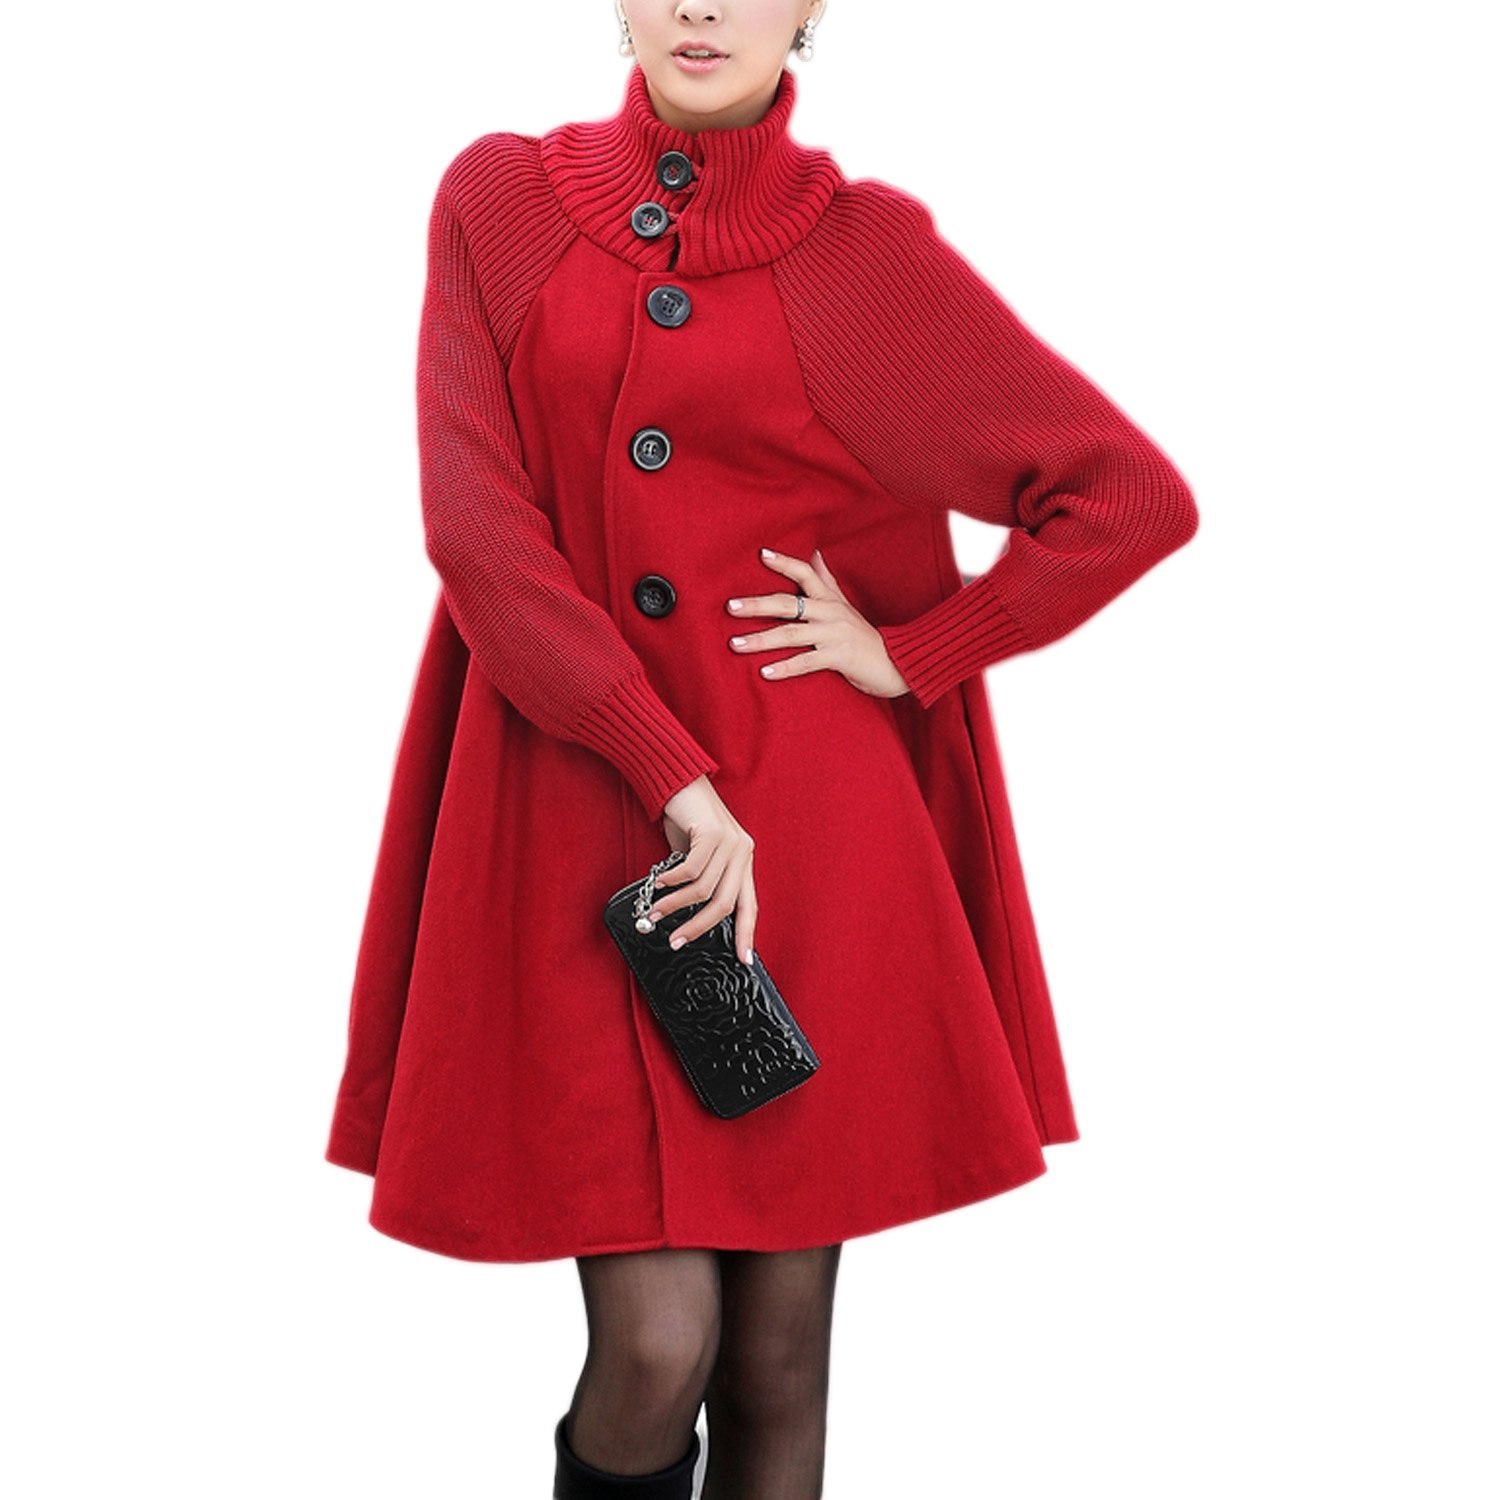 Donna Lunga Cappotto di Lana Blended Invernale Giacca